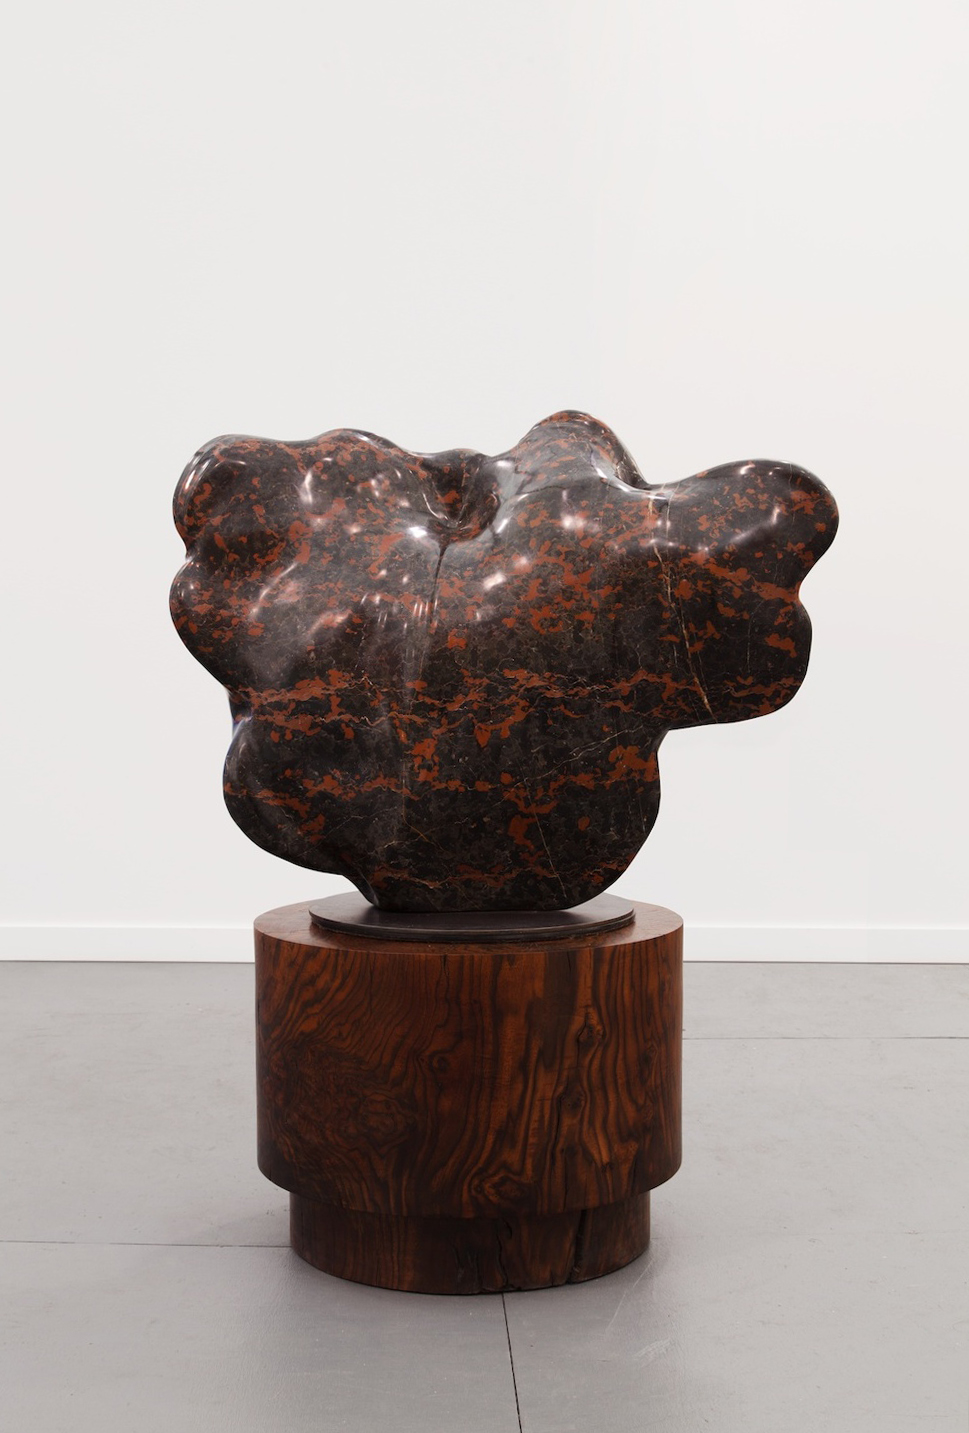 Alma Allen  Untitled  2014 Black marble with wood base 52h x 35w x 24d in AA020